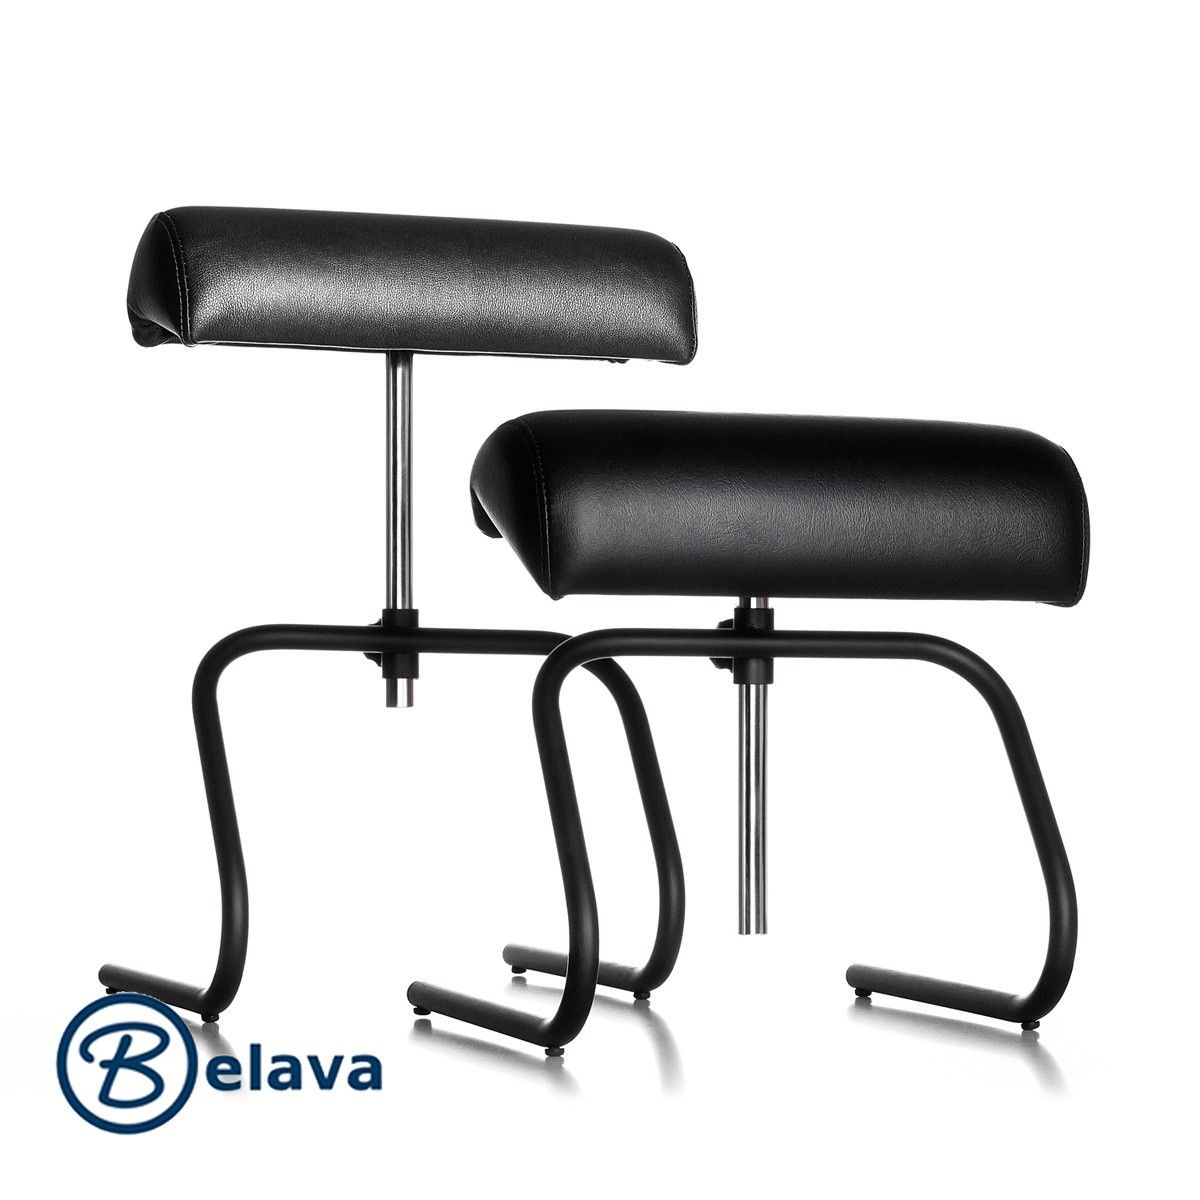 This+adjustable+footrest+can+be+used+with+any+Belava+pedicure+tub ...